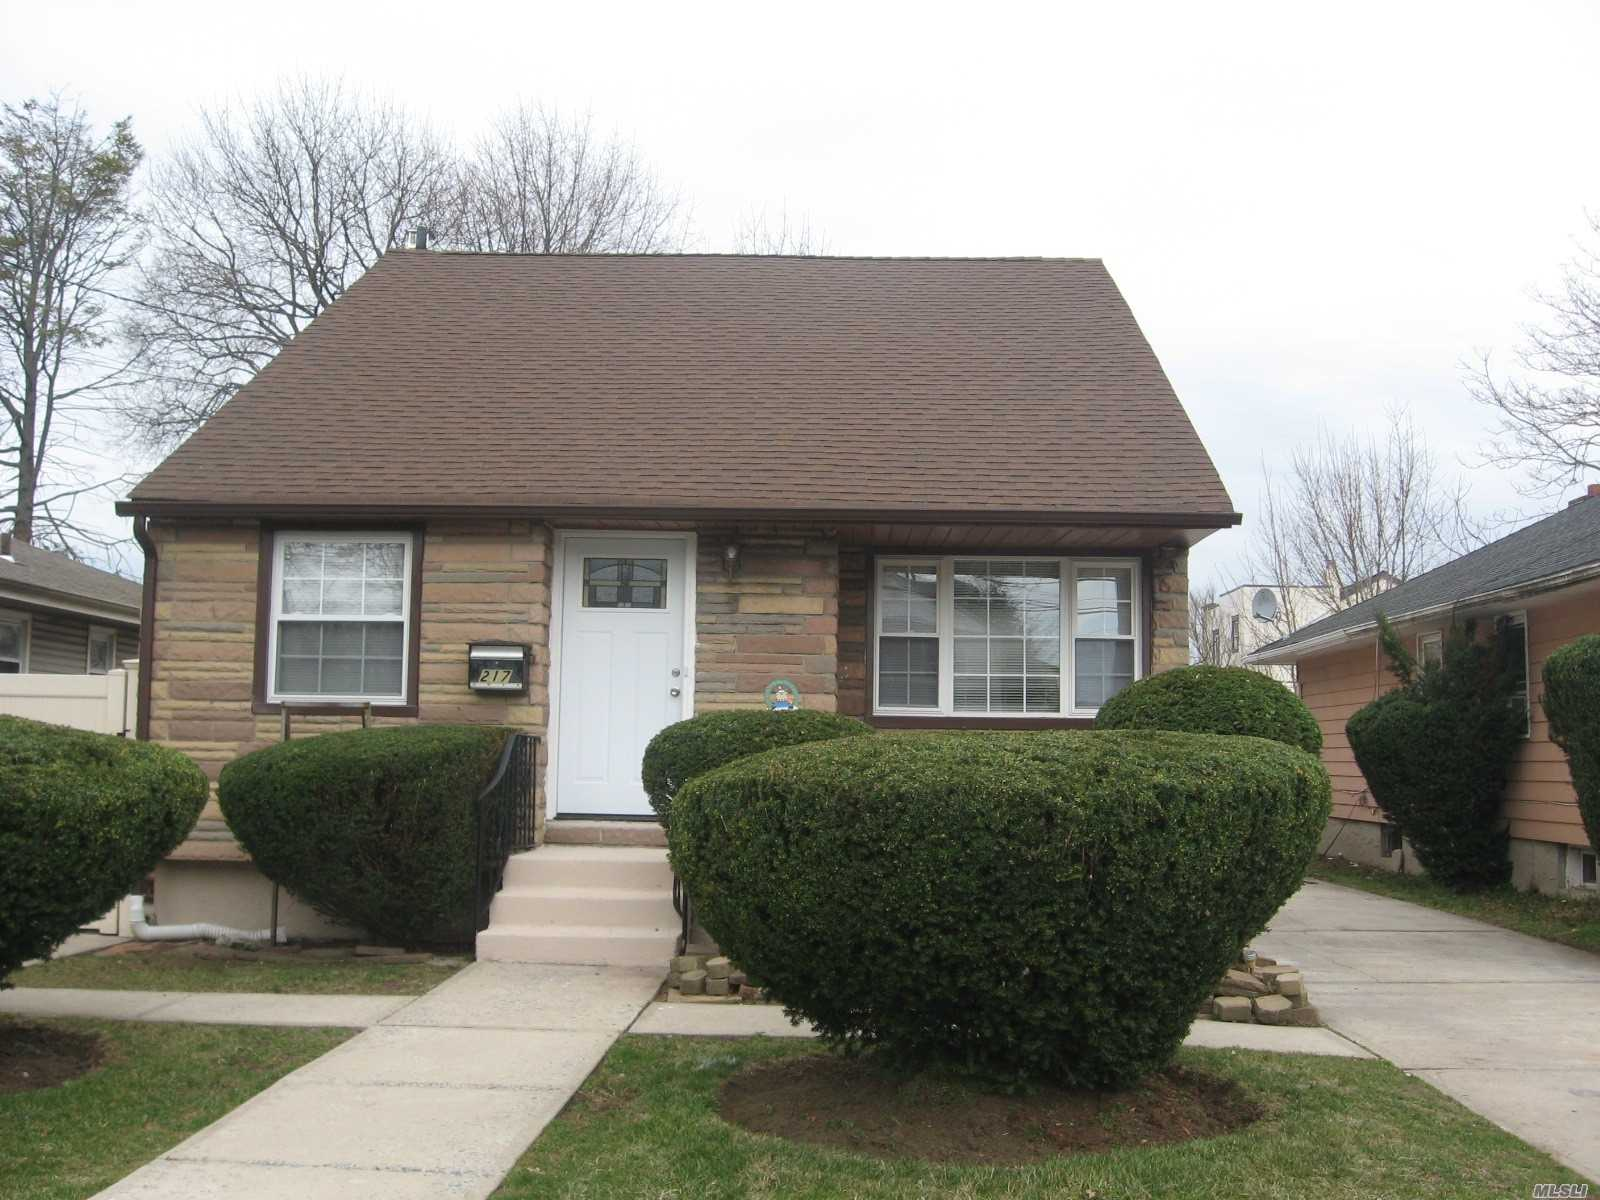 217 Windsor Pky - Hempstead, New York